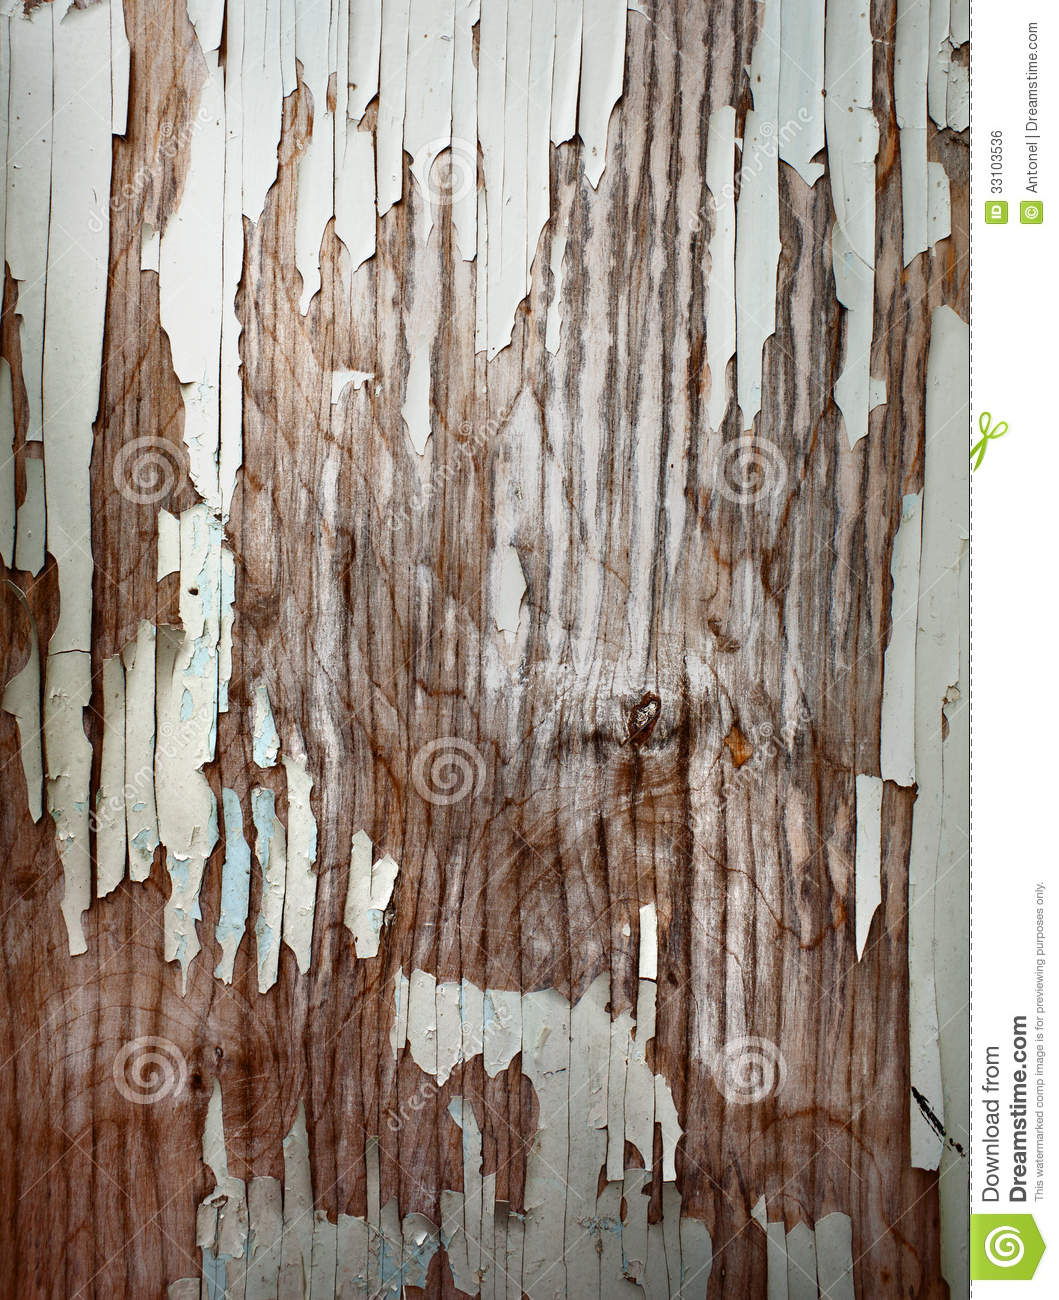 peeling paint on an old wall royalty free stock image. Black Bedroom Furniture Sets. Home Design Ideas